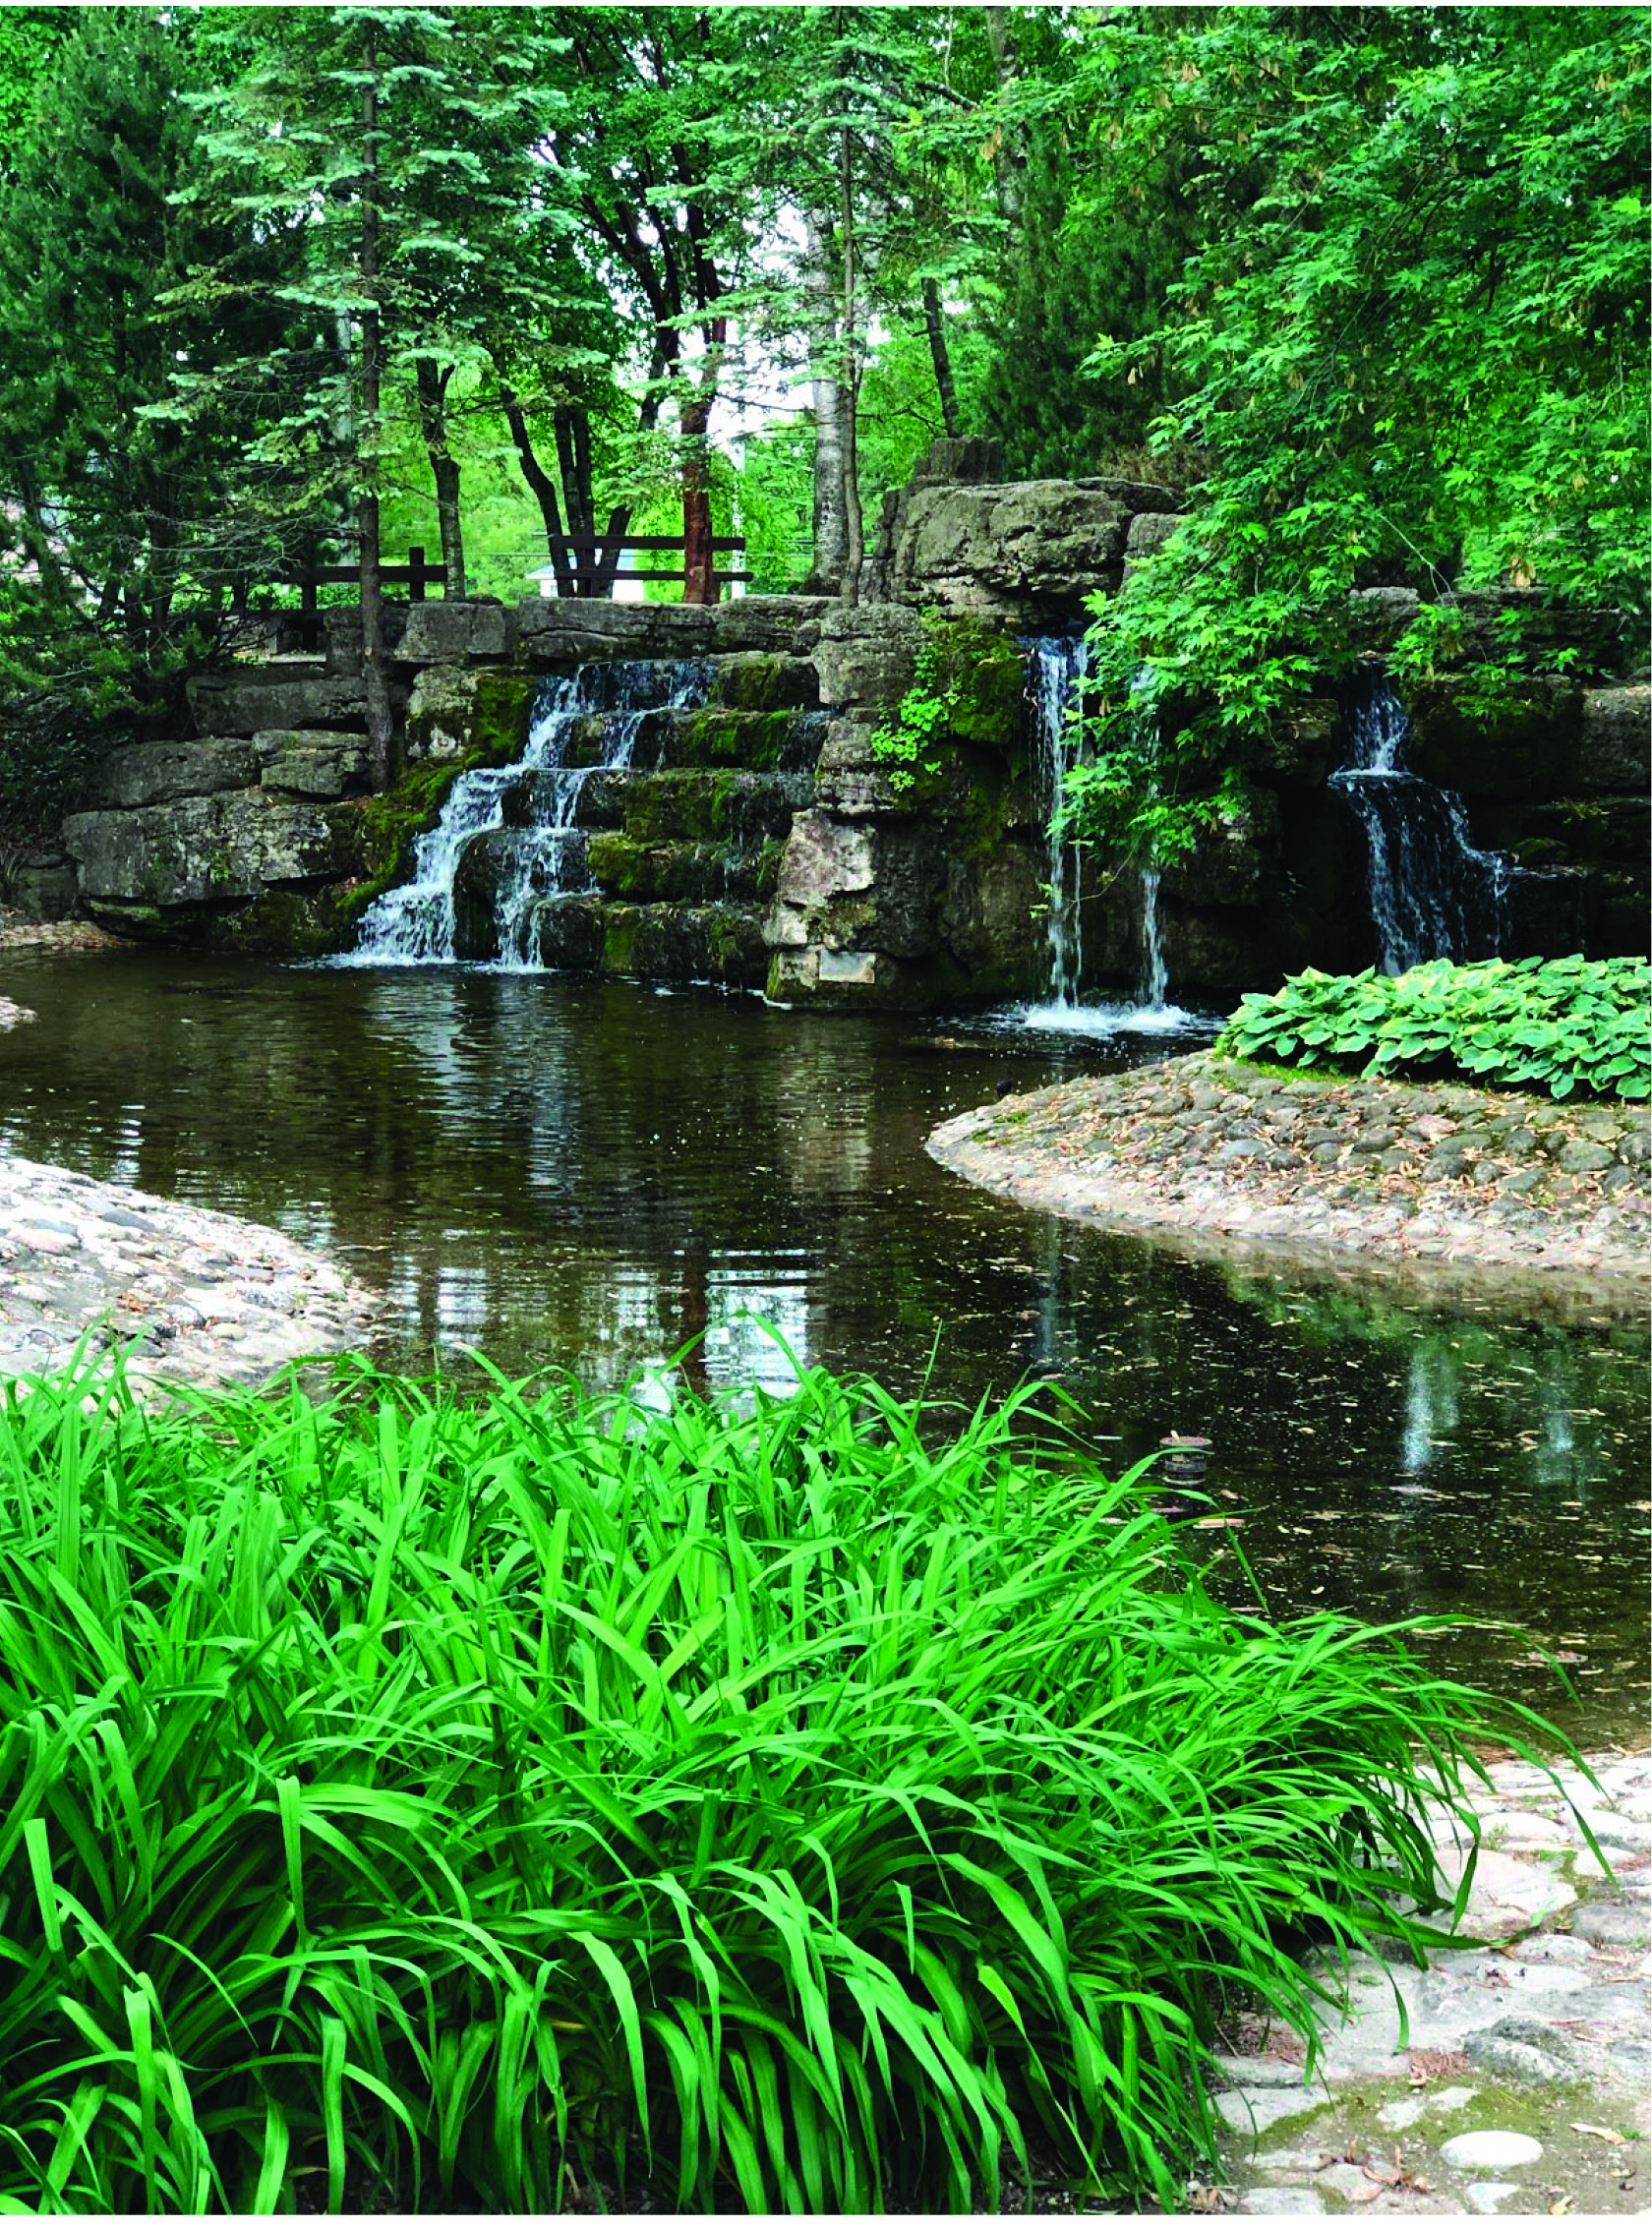 Confederation Park - Adjacent to The Ted Blowes Memorial Pollinator Peace Garden are the beautiful waterfalls and gardens located in Confederation Park.